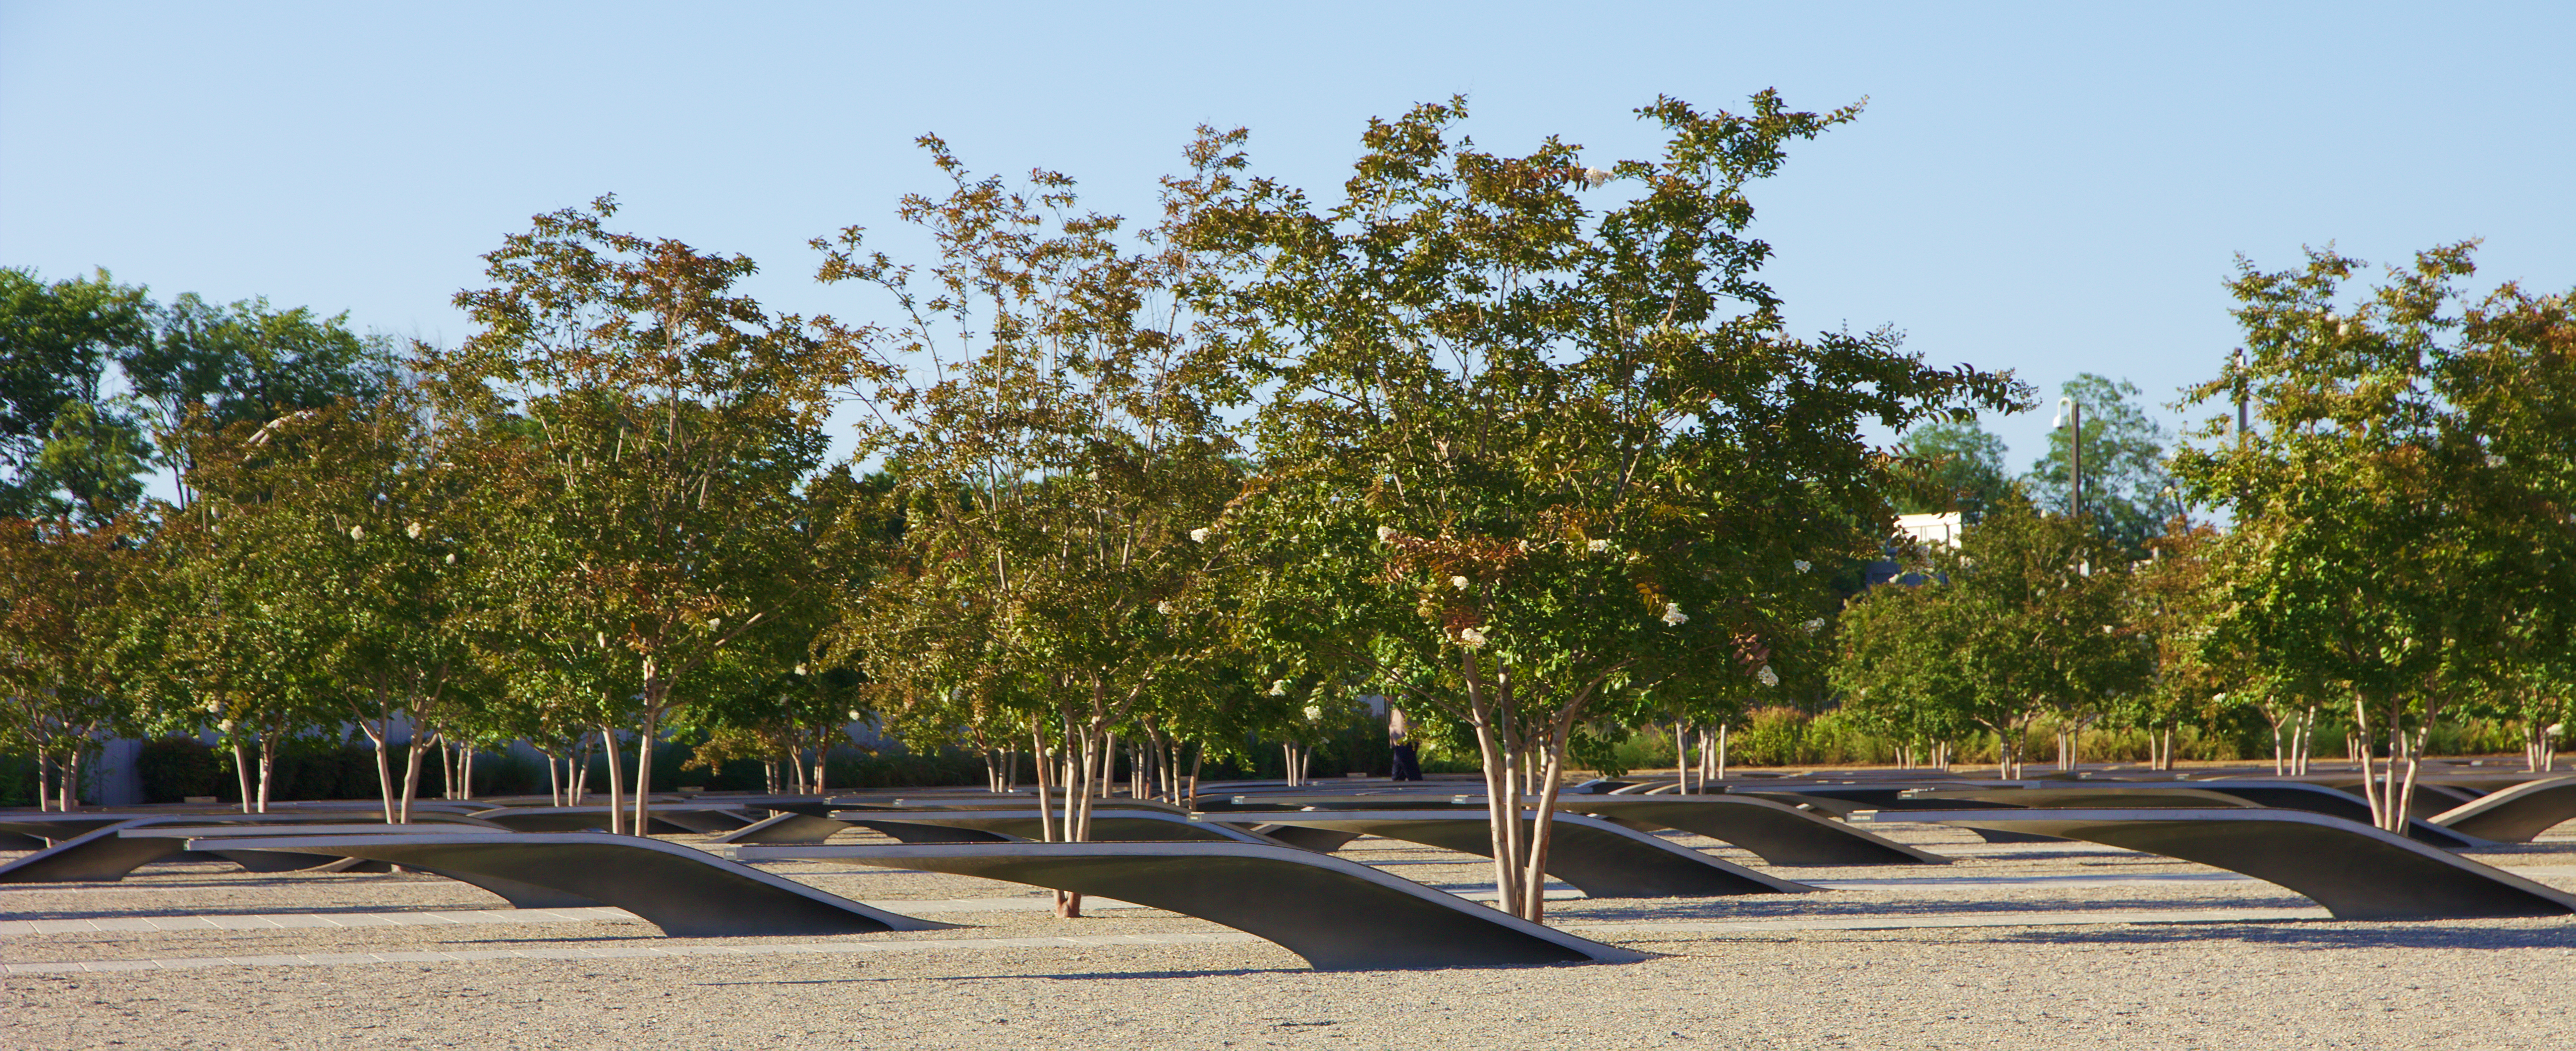 Trees planted at the Pentagon in Washington, D.C. in memory of those who lost their lives on September 11, 2001